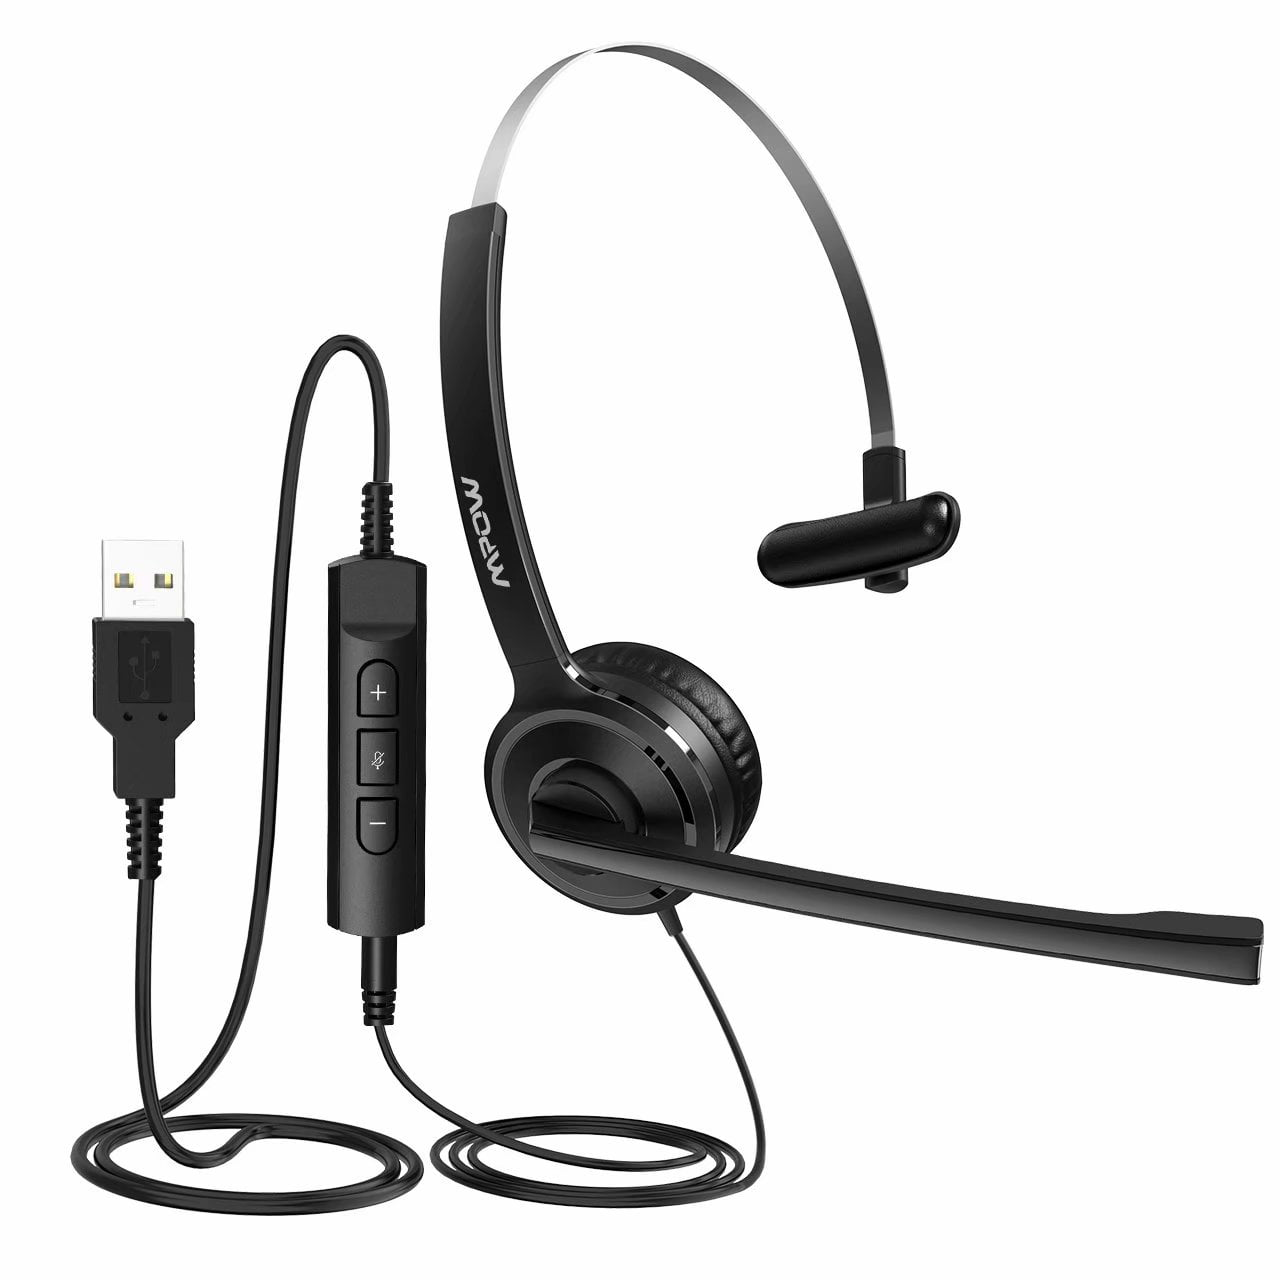 Mpow Single Sided Usb Headset With Microphone Over The Head Computer Headphone For Pc 270 Degree Boom Mic For Right Left Ear Comfort Fit Call Center Headsets With In Cord Volume Control Walmart Com Walmart Com